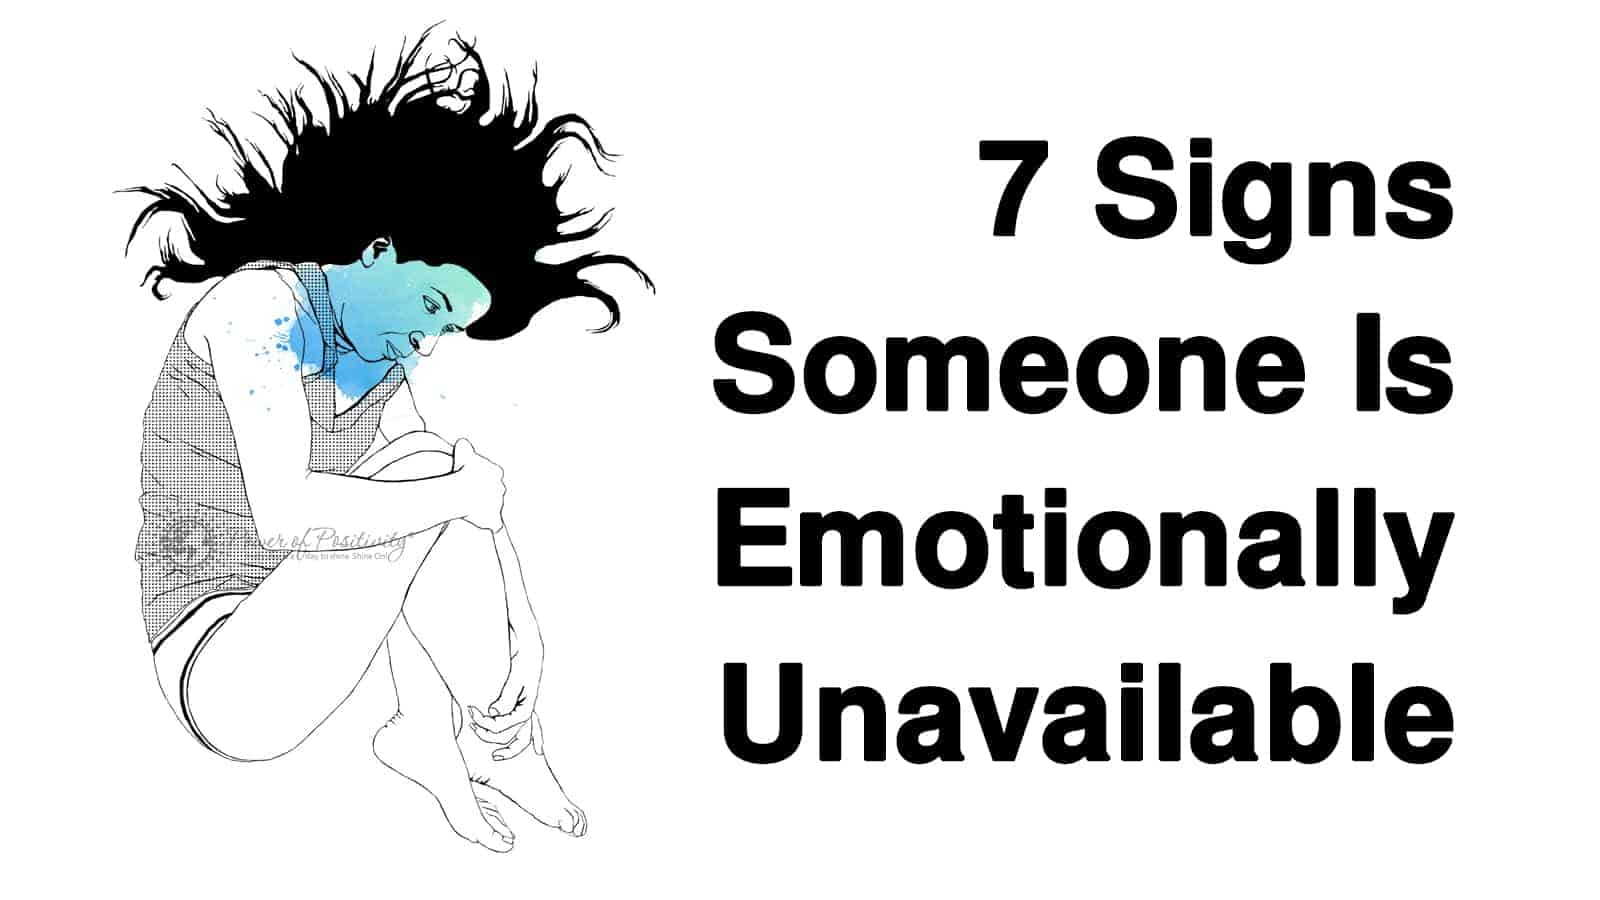 She is emotionally unavailable